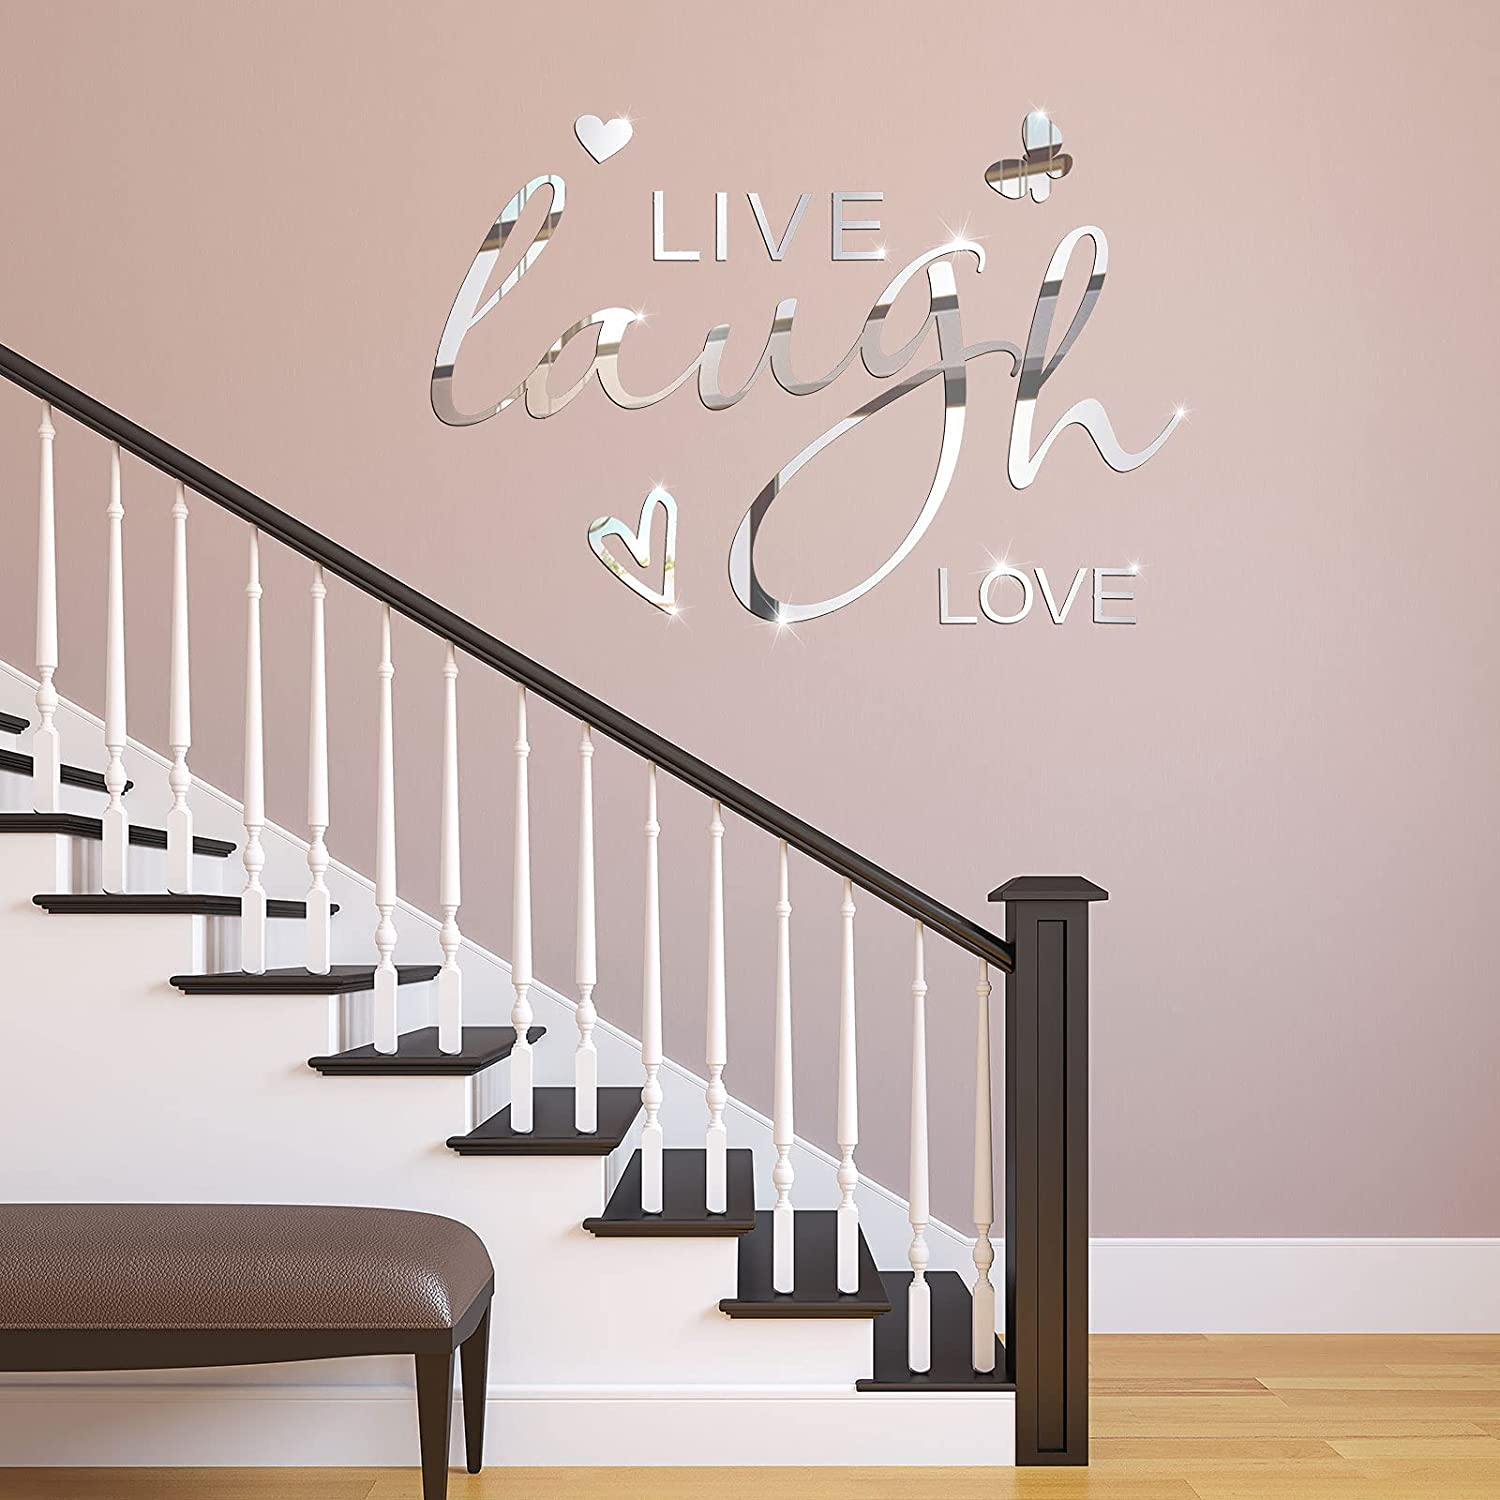 3D Acrylic Mirror Wall Decors Laugh Love Wall Stickers Removable Letters Quotes Decals Butterfly Heart Wall Decors DIY Motivational Mirror Wall Stickers for Home Bedroom Kitchen Living Room Dorm